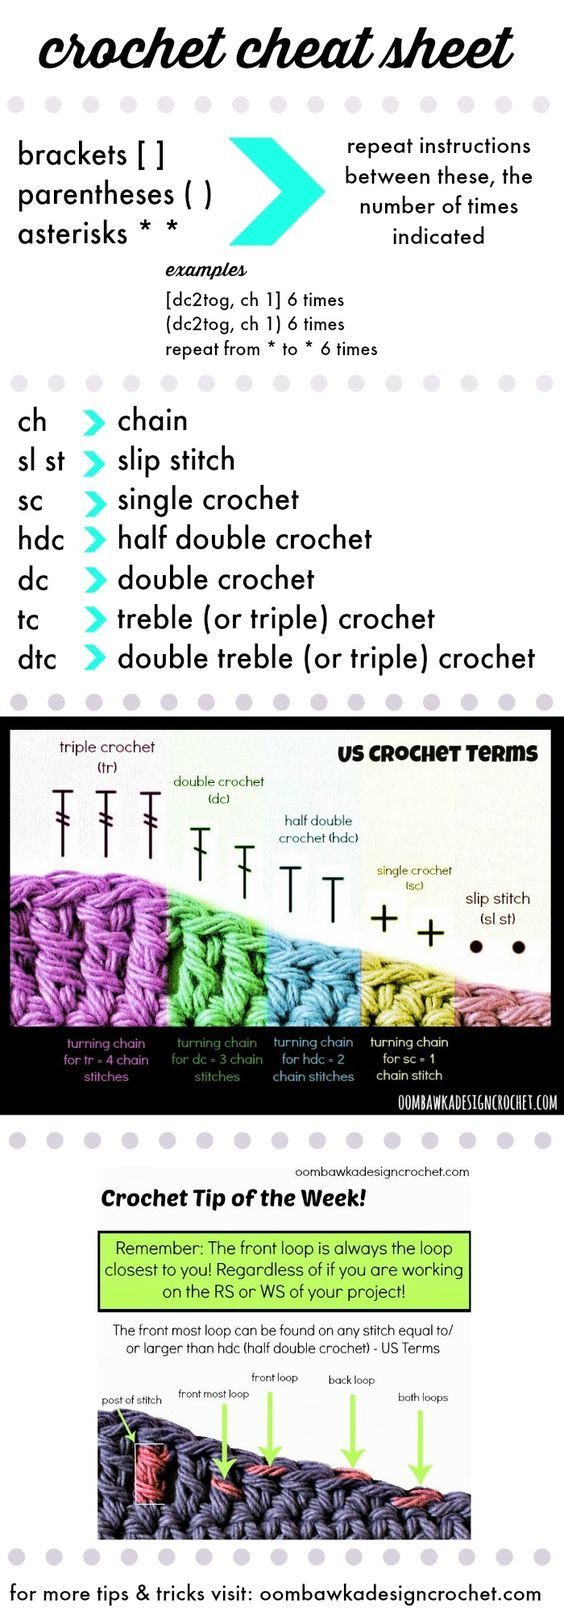 Need a Crochet Cheat Sheet? Try this one on for size! You can click this image to enlarge it and please PIN to share it with others. More tips, tricks, tutorials and links you might want to ...